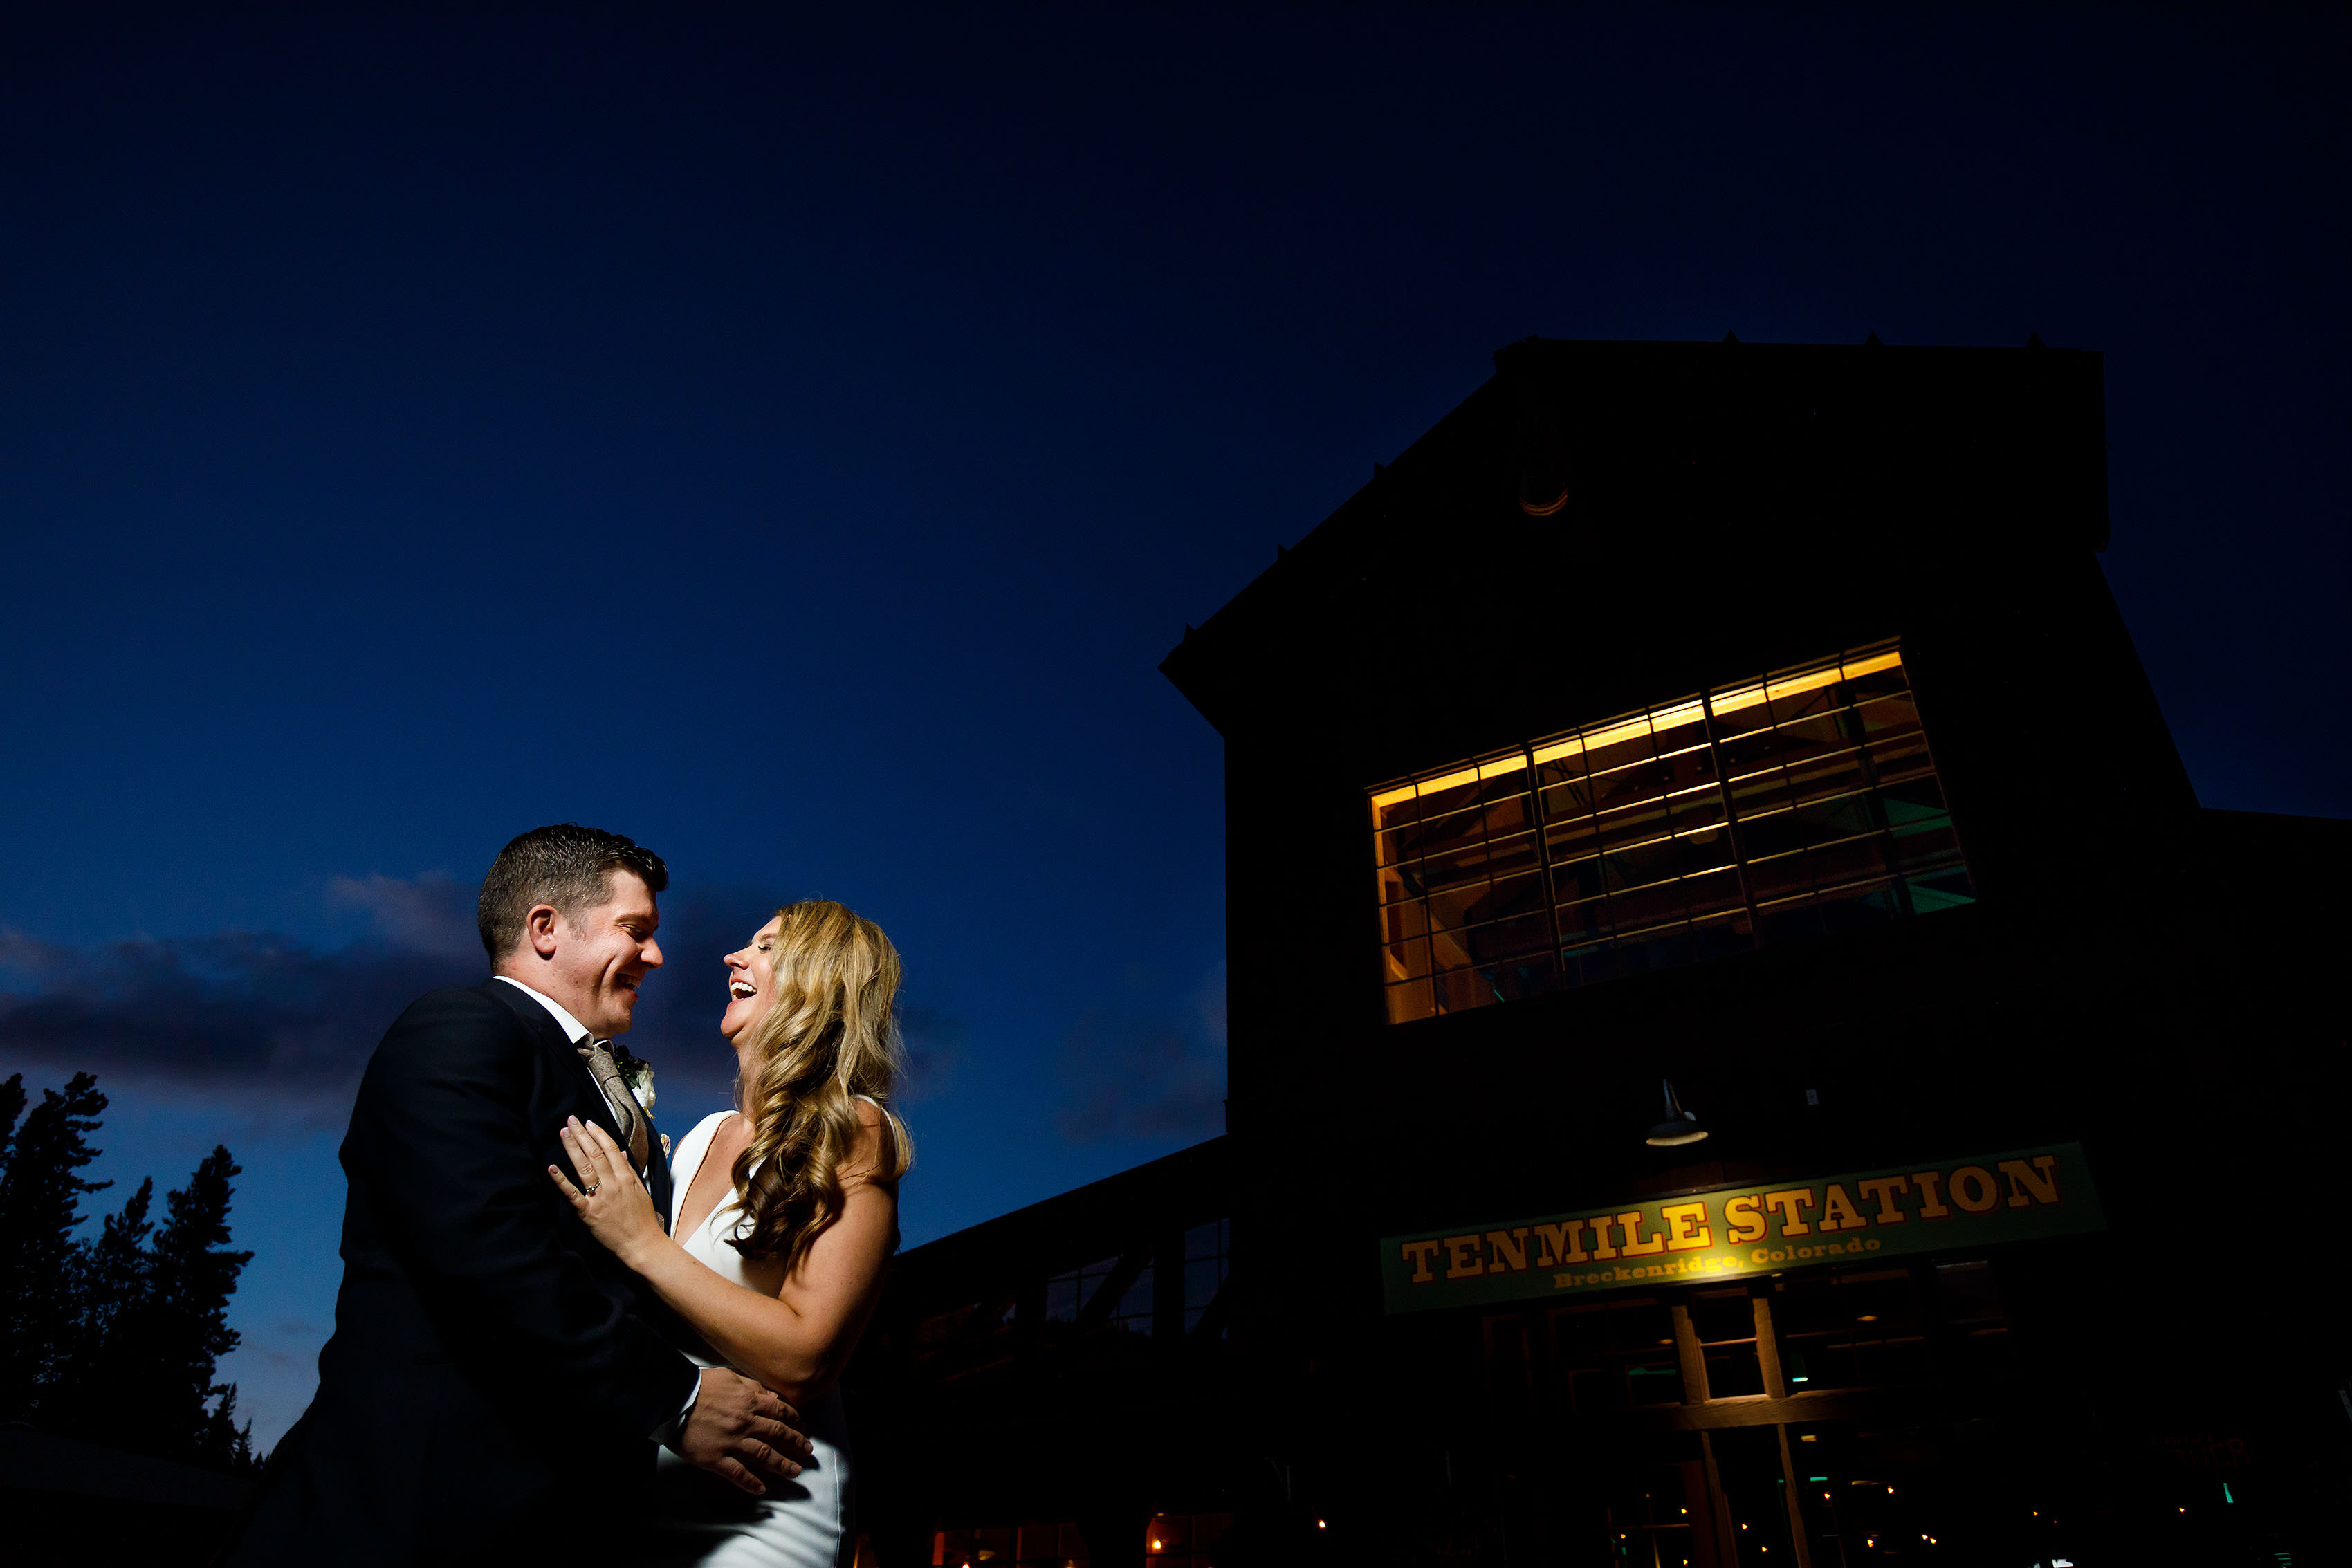 The bride and groom laugh during a portrait at twilight outside their wedding at TenMile Station at Breckenridge